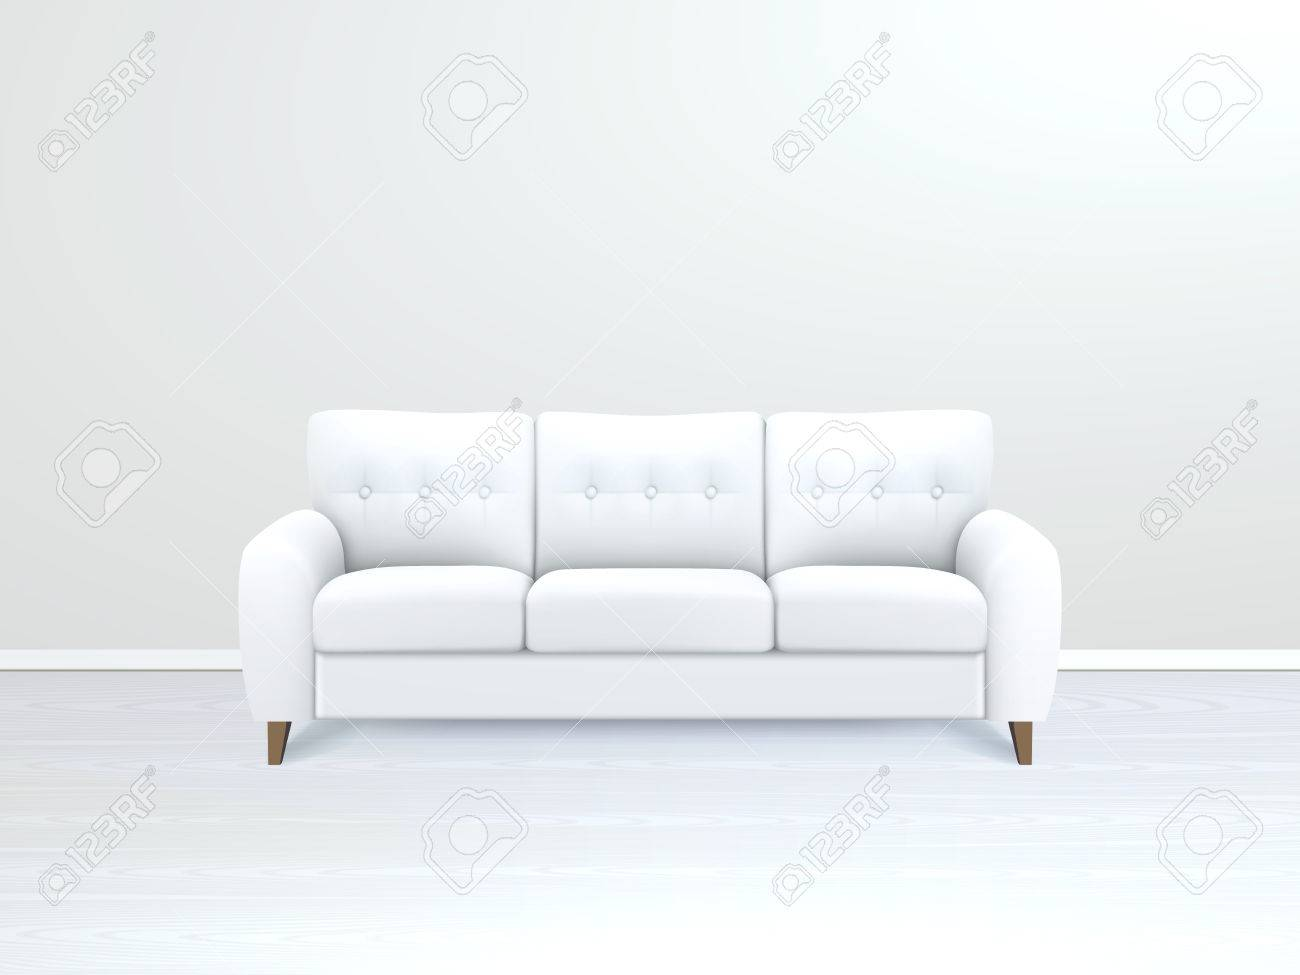 sofa art gallery leather or fabric dogs white soft luxury in modern apartment salon vector office interior realistic illustration